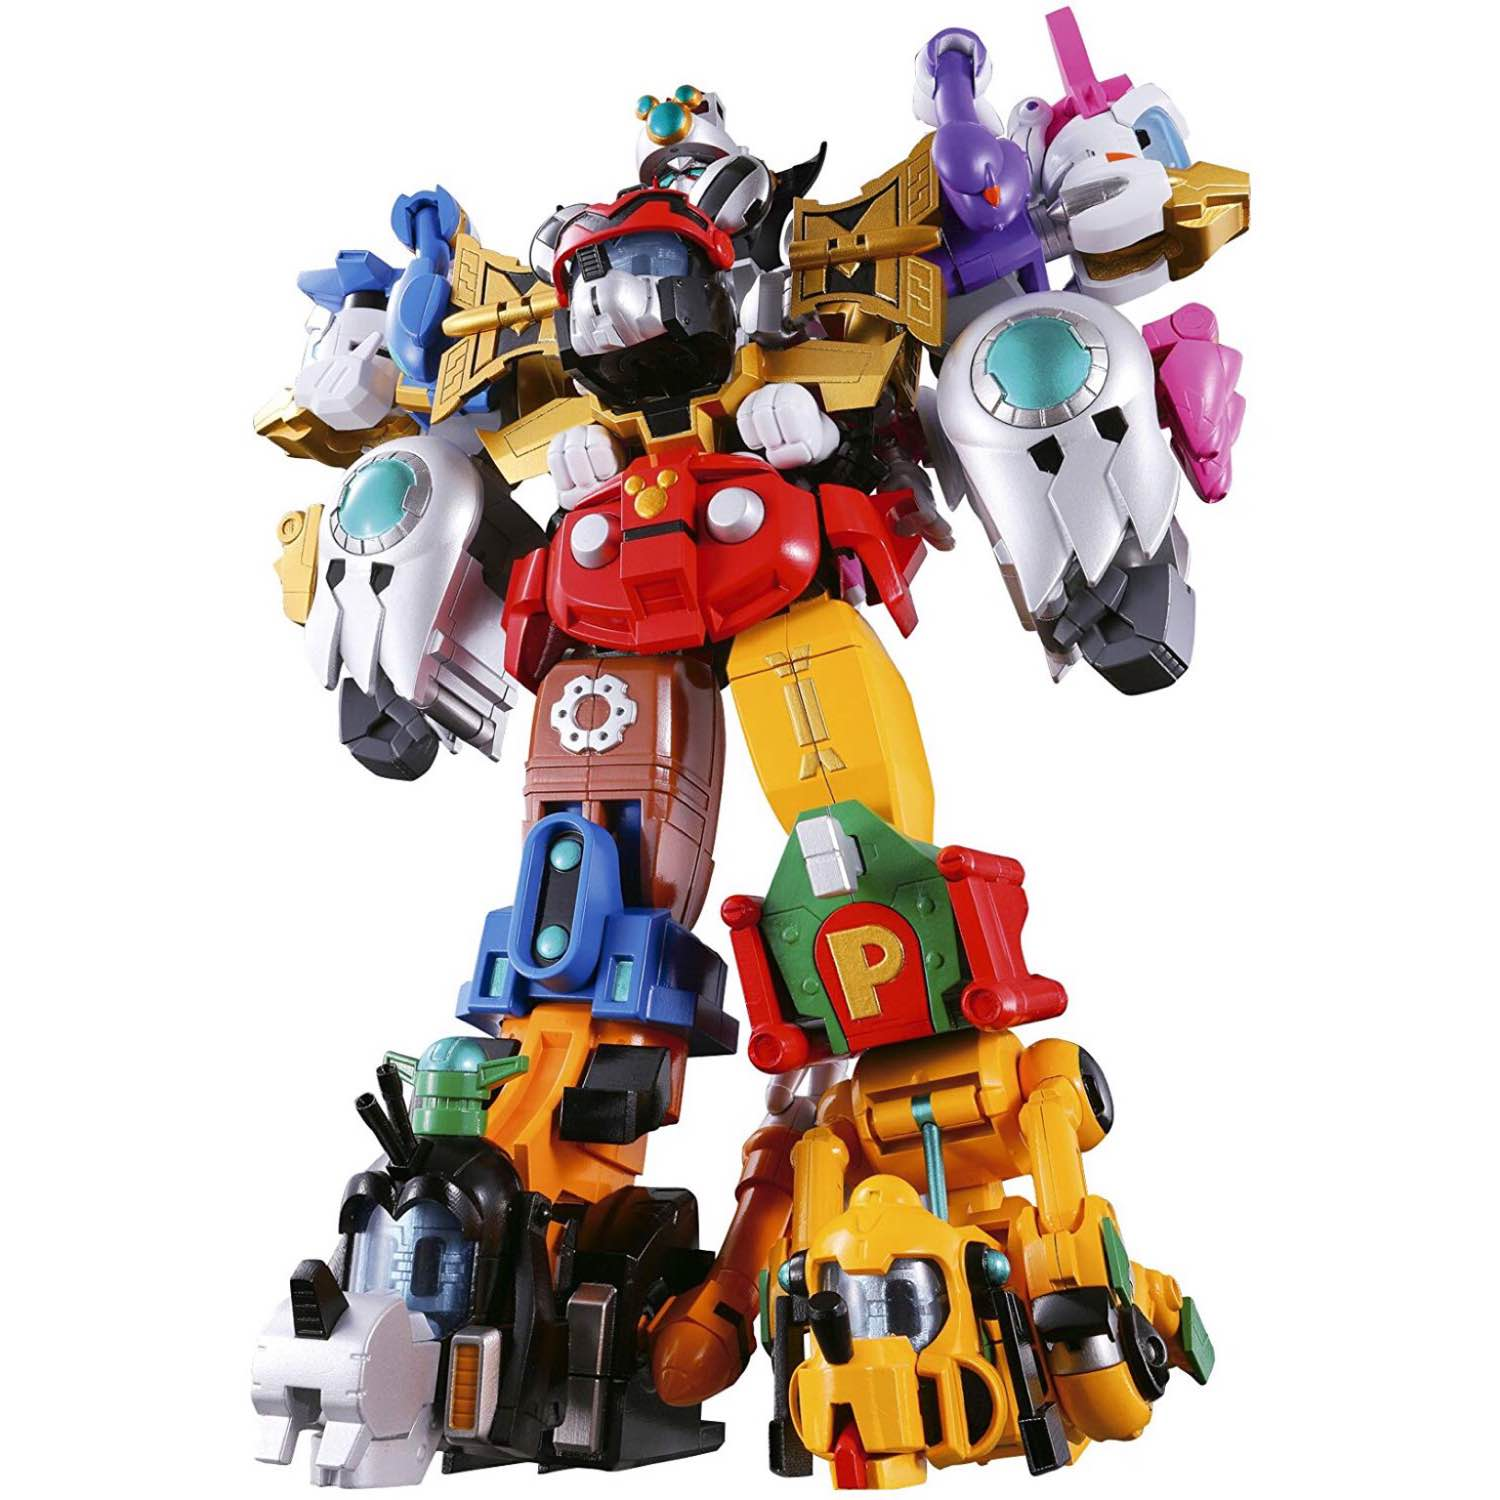 disney-bandai-toy-story-chogokin-mecha-toys-mickey-and-friends